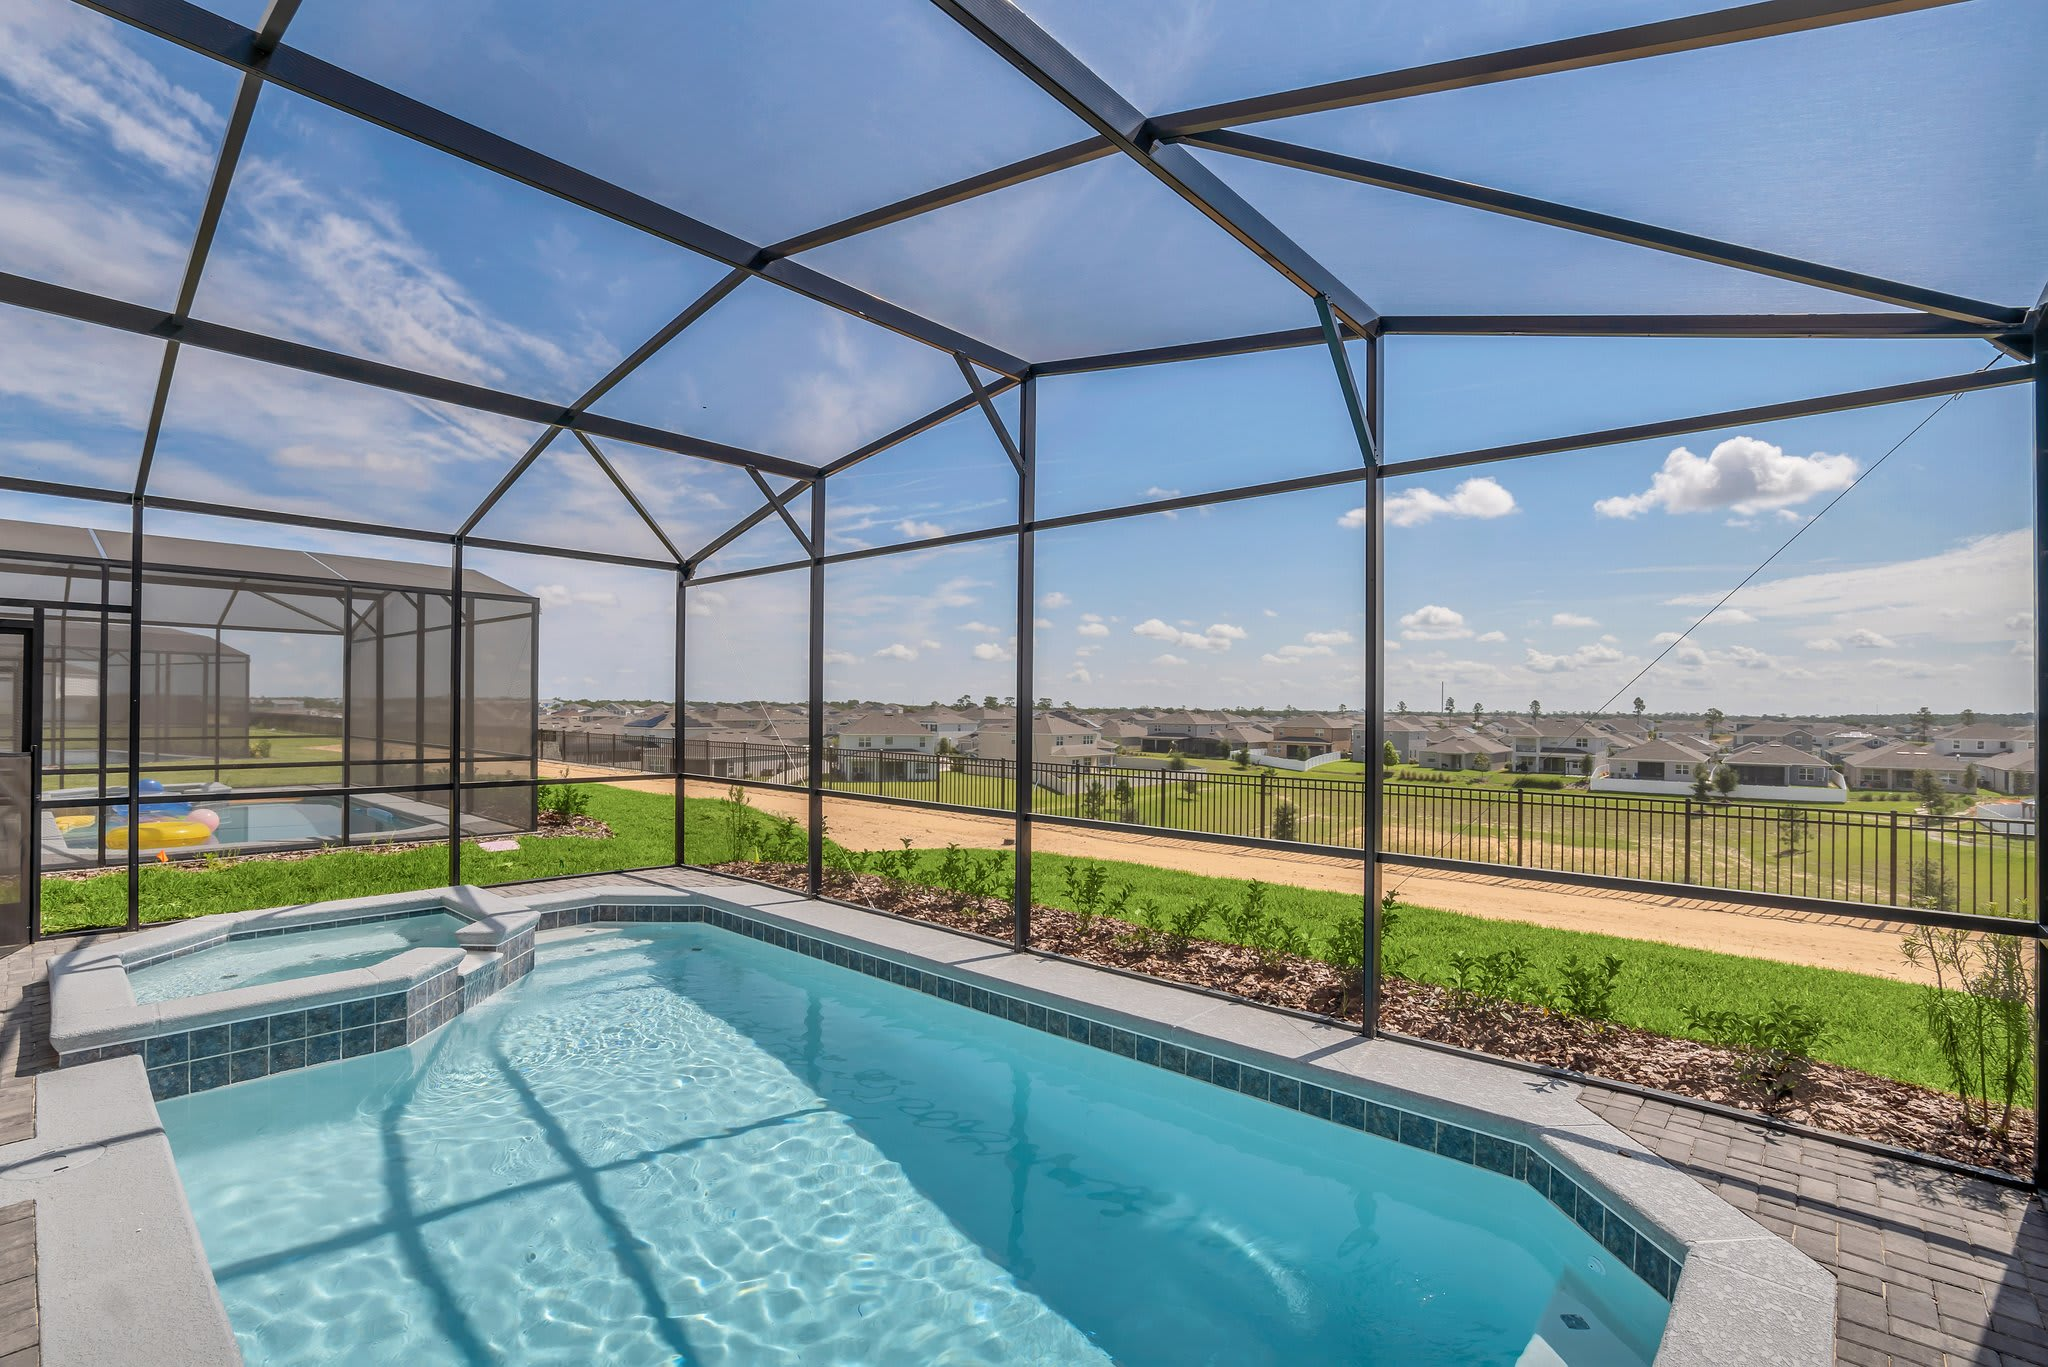 7BR Home - Family Resort - Private Pool, Hot Tub and BBQ!